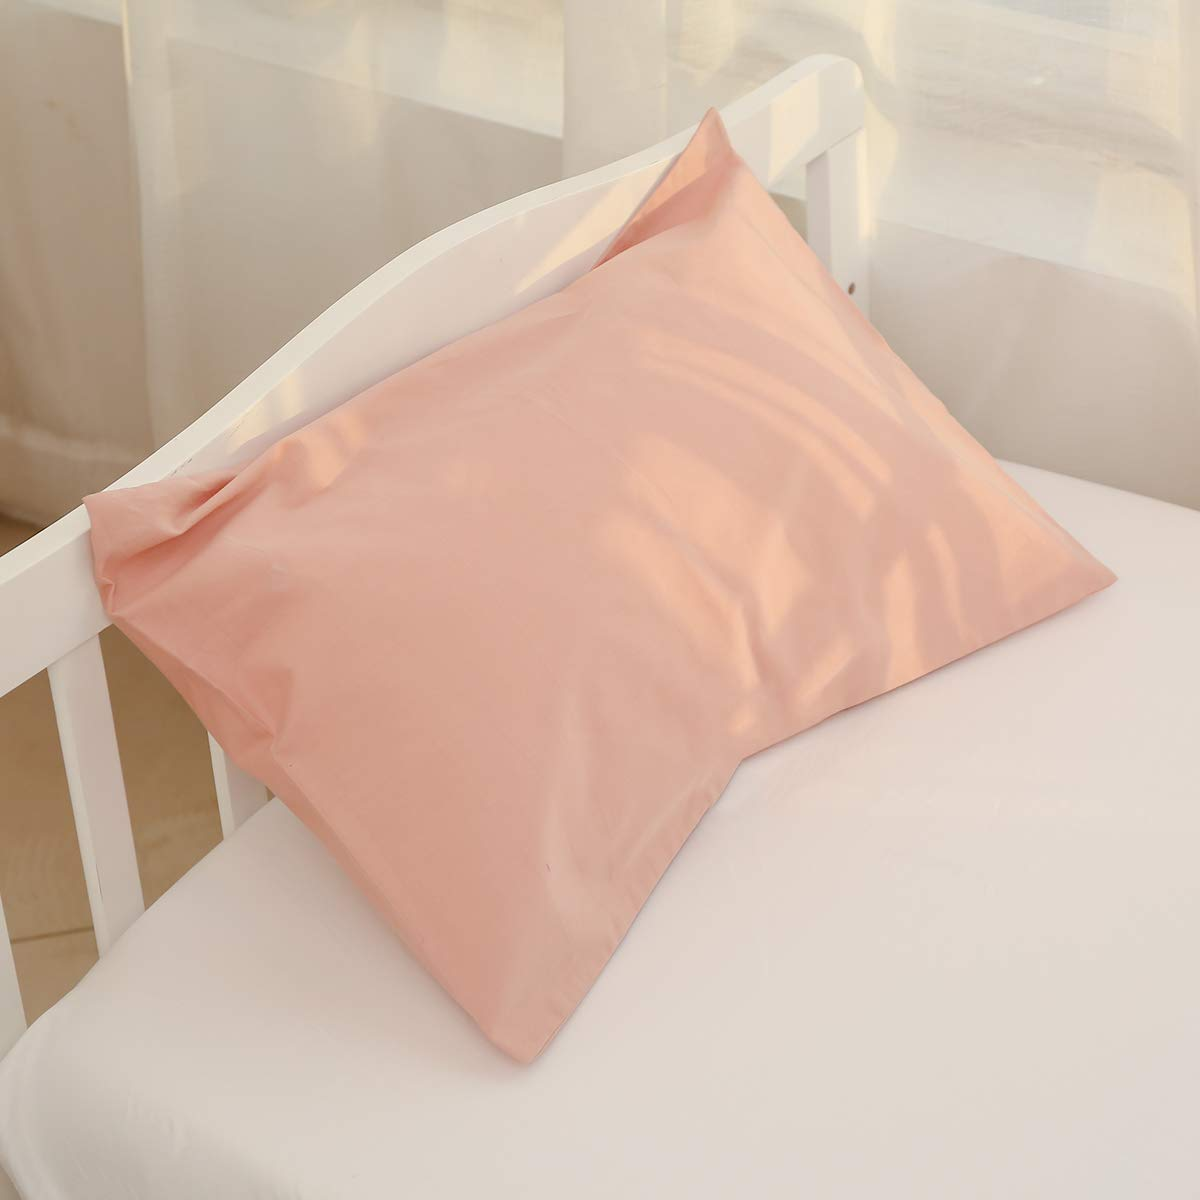 Kids Toddler Pillowcases100/% Natural Cotton Travel Pillowcase Cover with Envelope Closure 2 Pcs 14x20 or 13x 18 inch Baby Pillow Cases for Sleeping for Kids Solid Pillowcases Kids Pillowcases